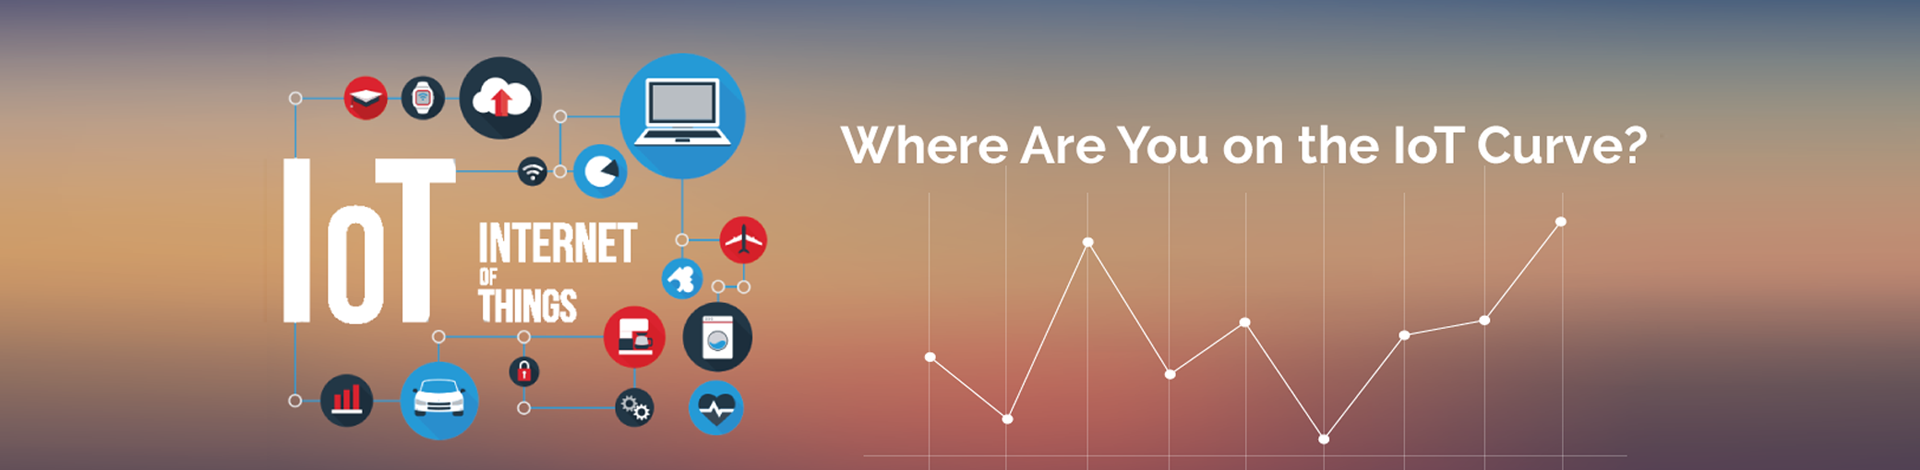 Where-Are-You-on-the-IoT-Curve